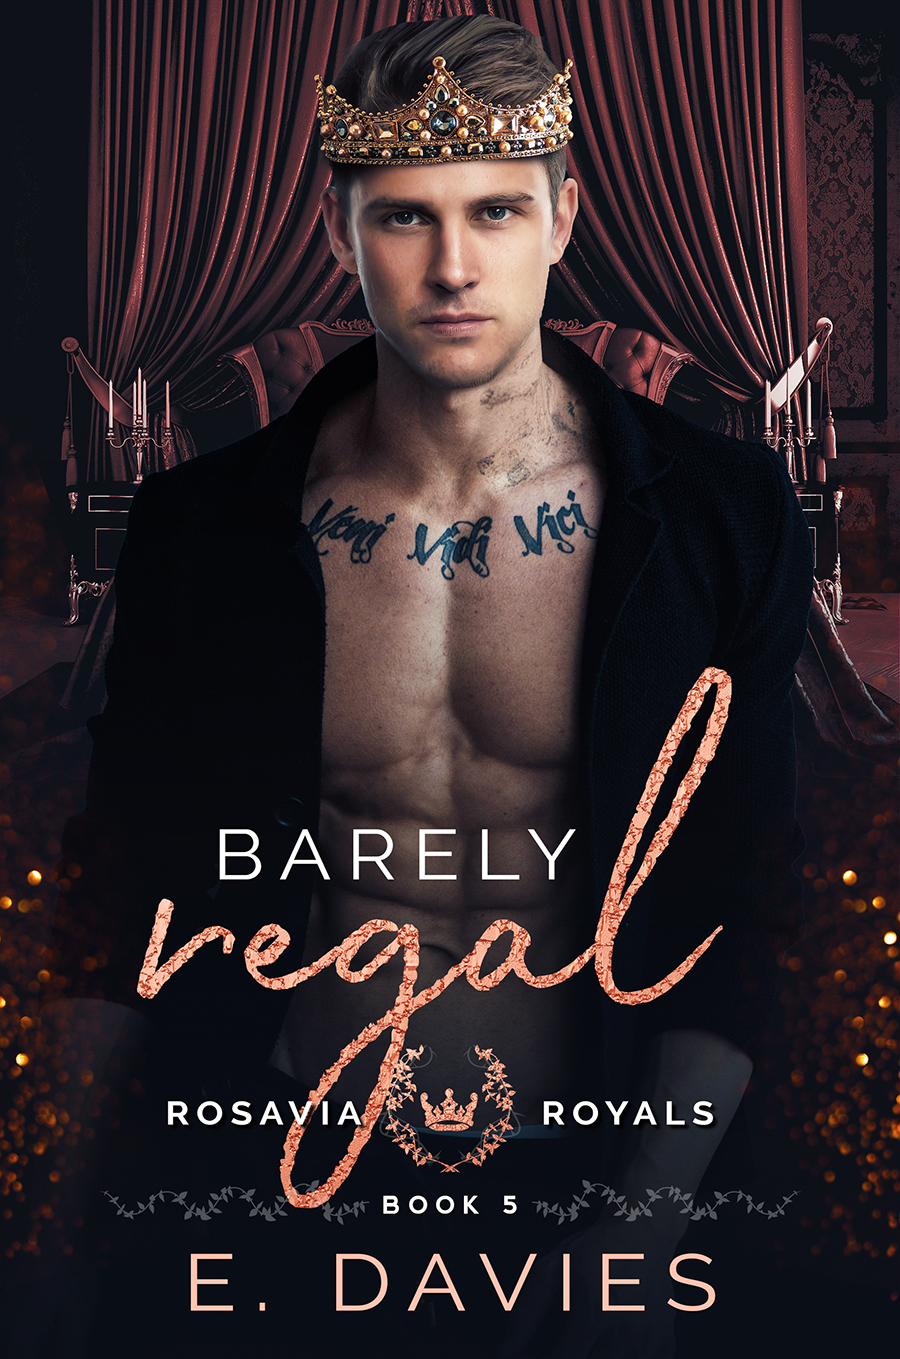 RR-5-BarelyRegal-Davies-Medium